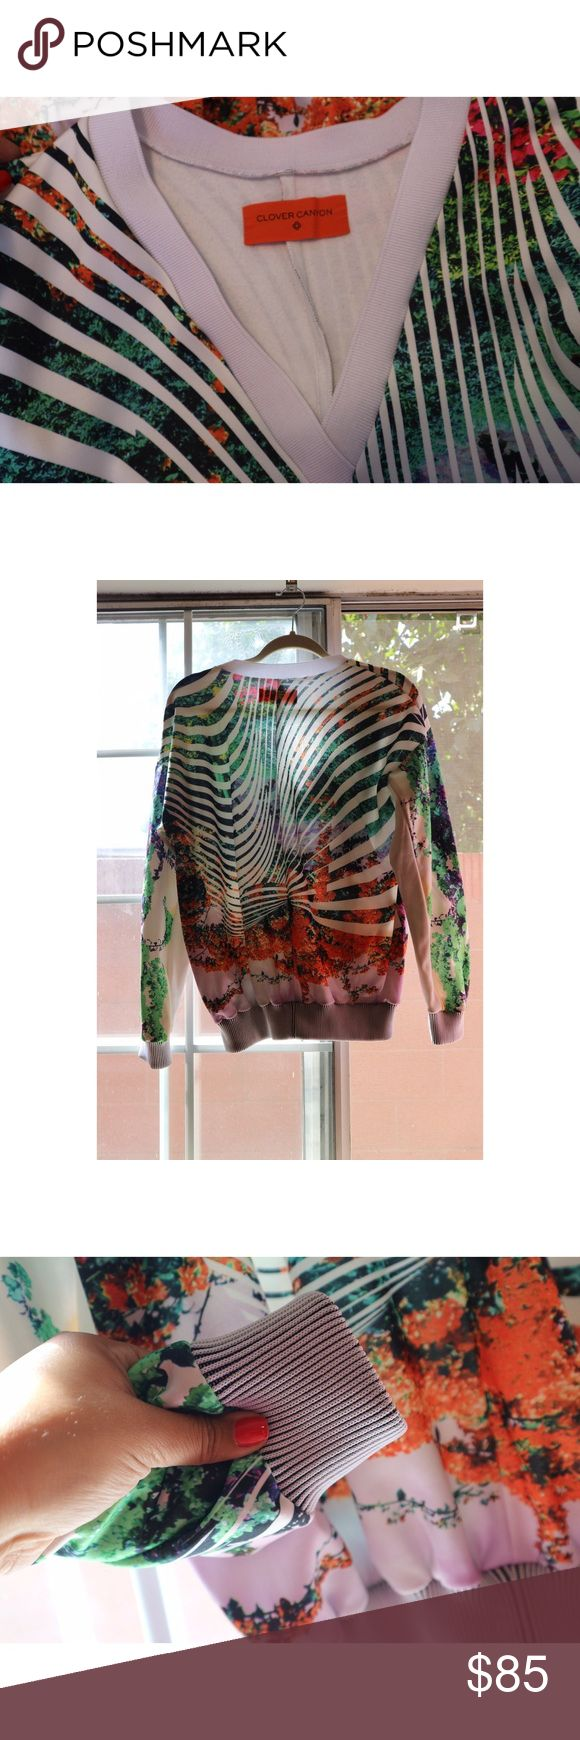 Clover canyon sweater Wonderful multi colored v neck sweater. Clover canyon brand as seen on some of the hottest celebs such as Beyoncé . Comfortable and stylish . Perfect staple for fall. Clover Canyon Sweaters V-Necks